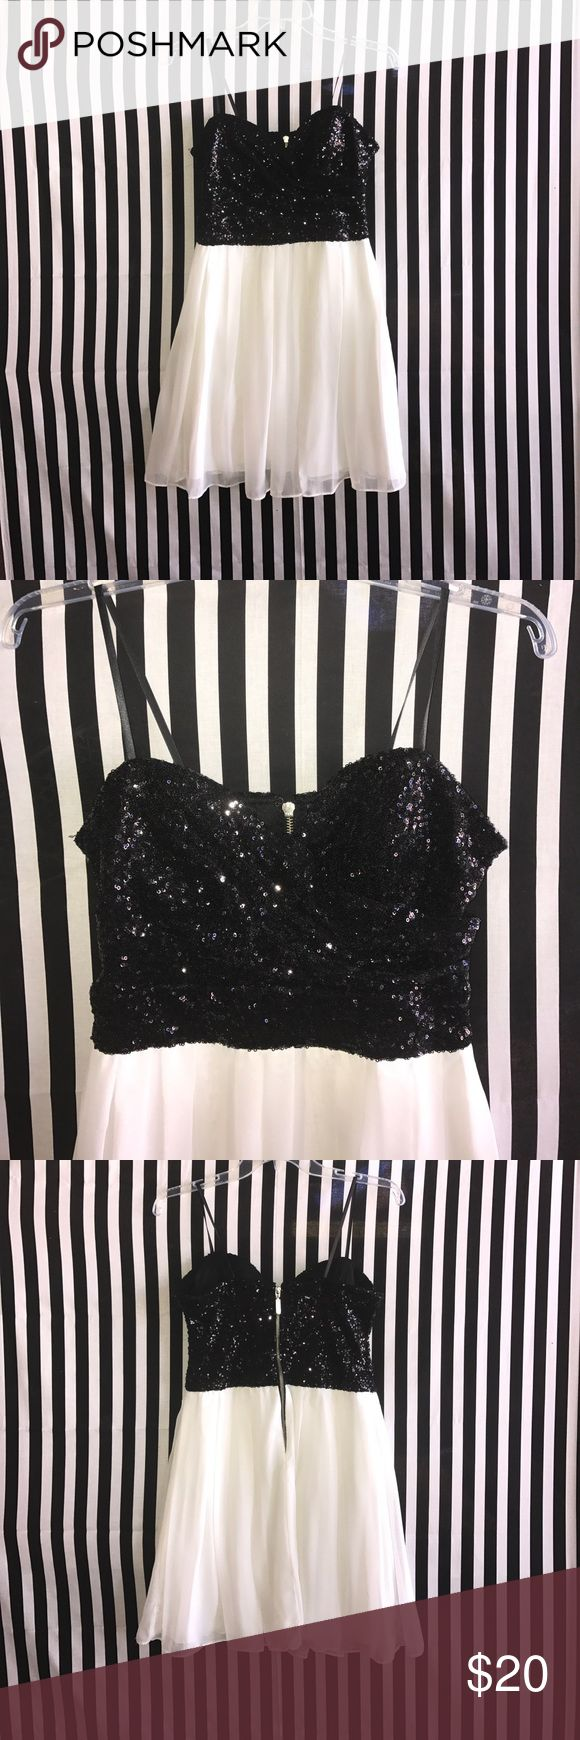 Juniors Size 13, B. Smart Dress Gorgeous Dress with Black Sequins top. Great for parties or the holidays.  B.Smart Dress  Size 13 Only used one time. B. Smart Dresses